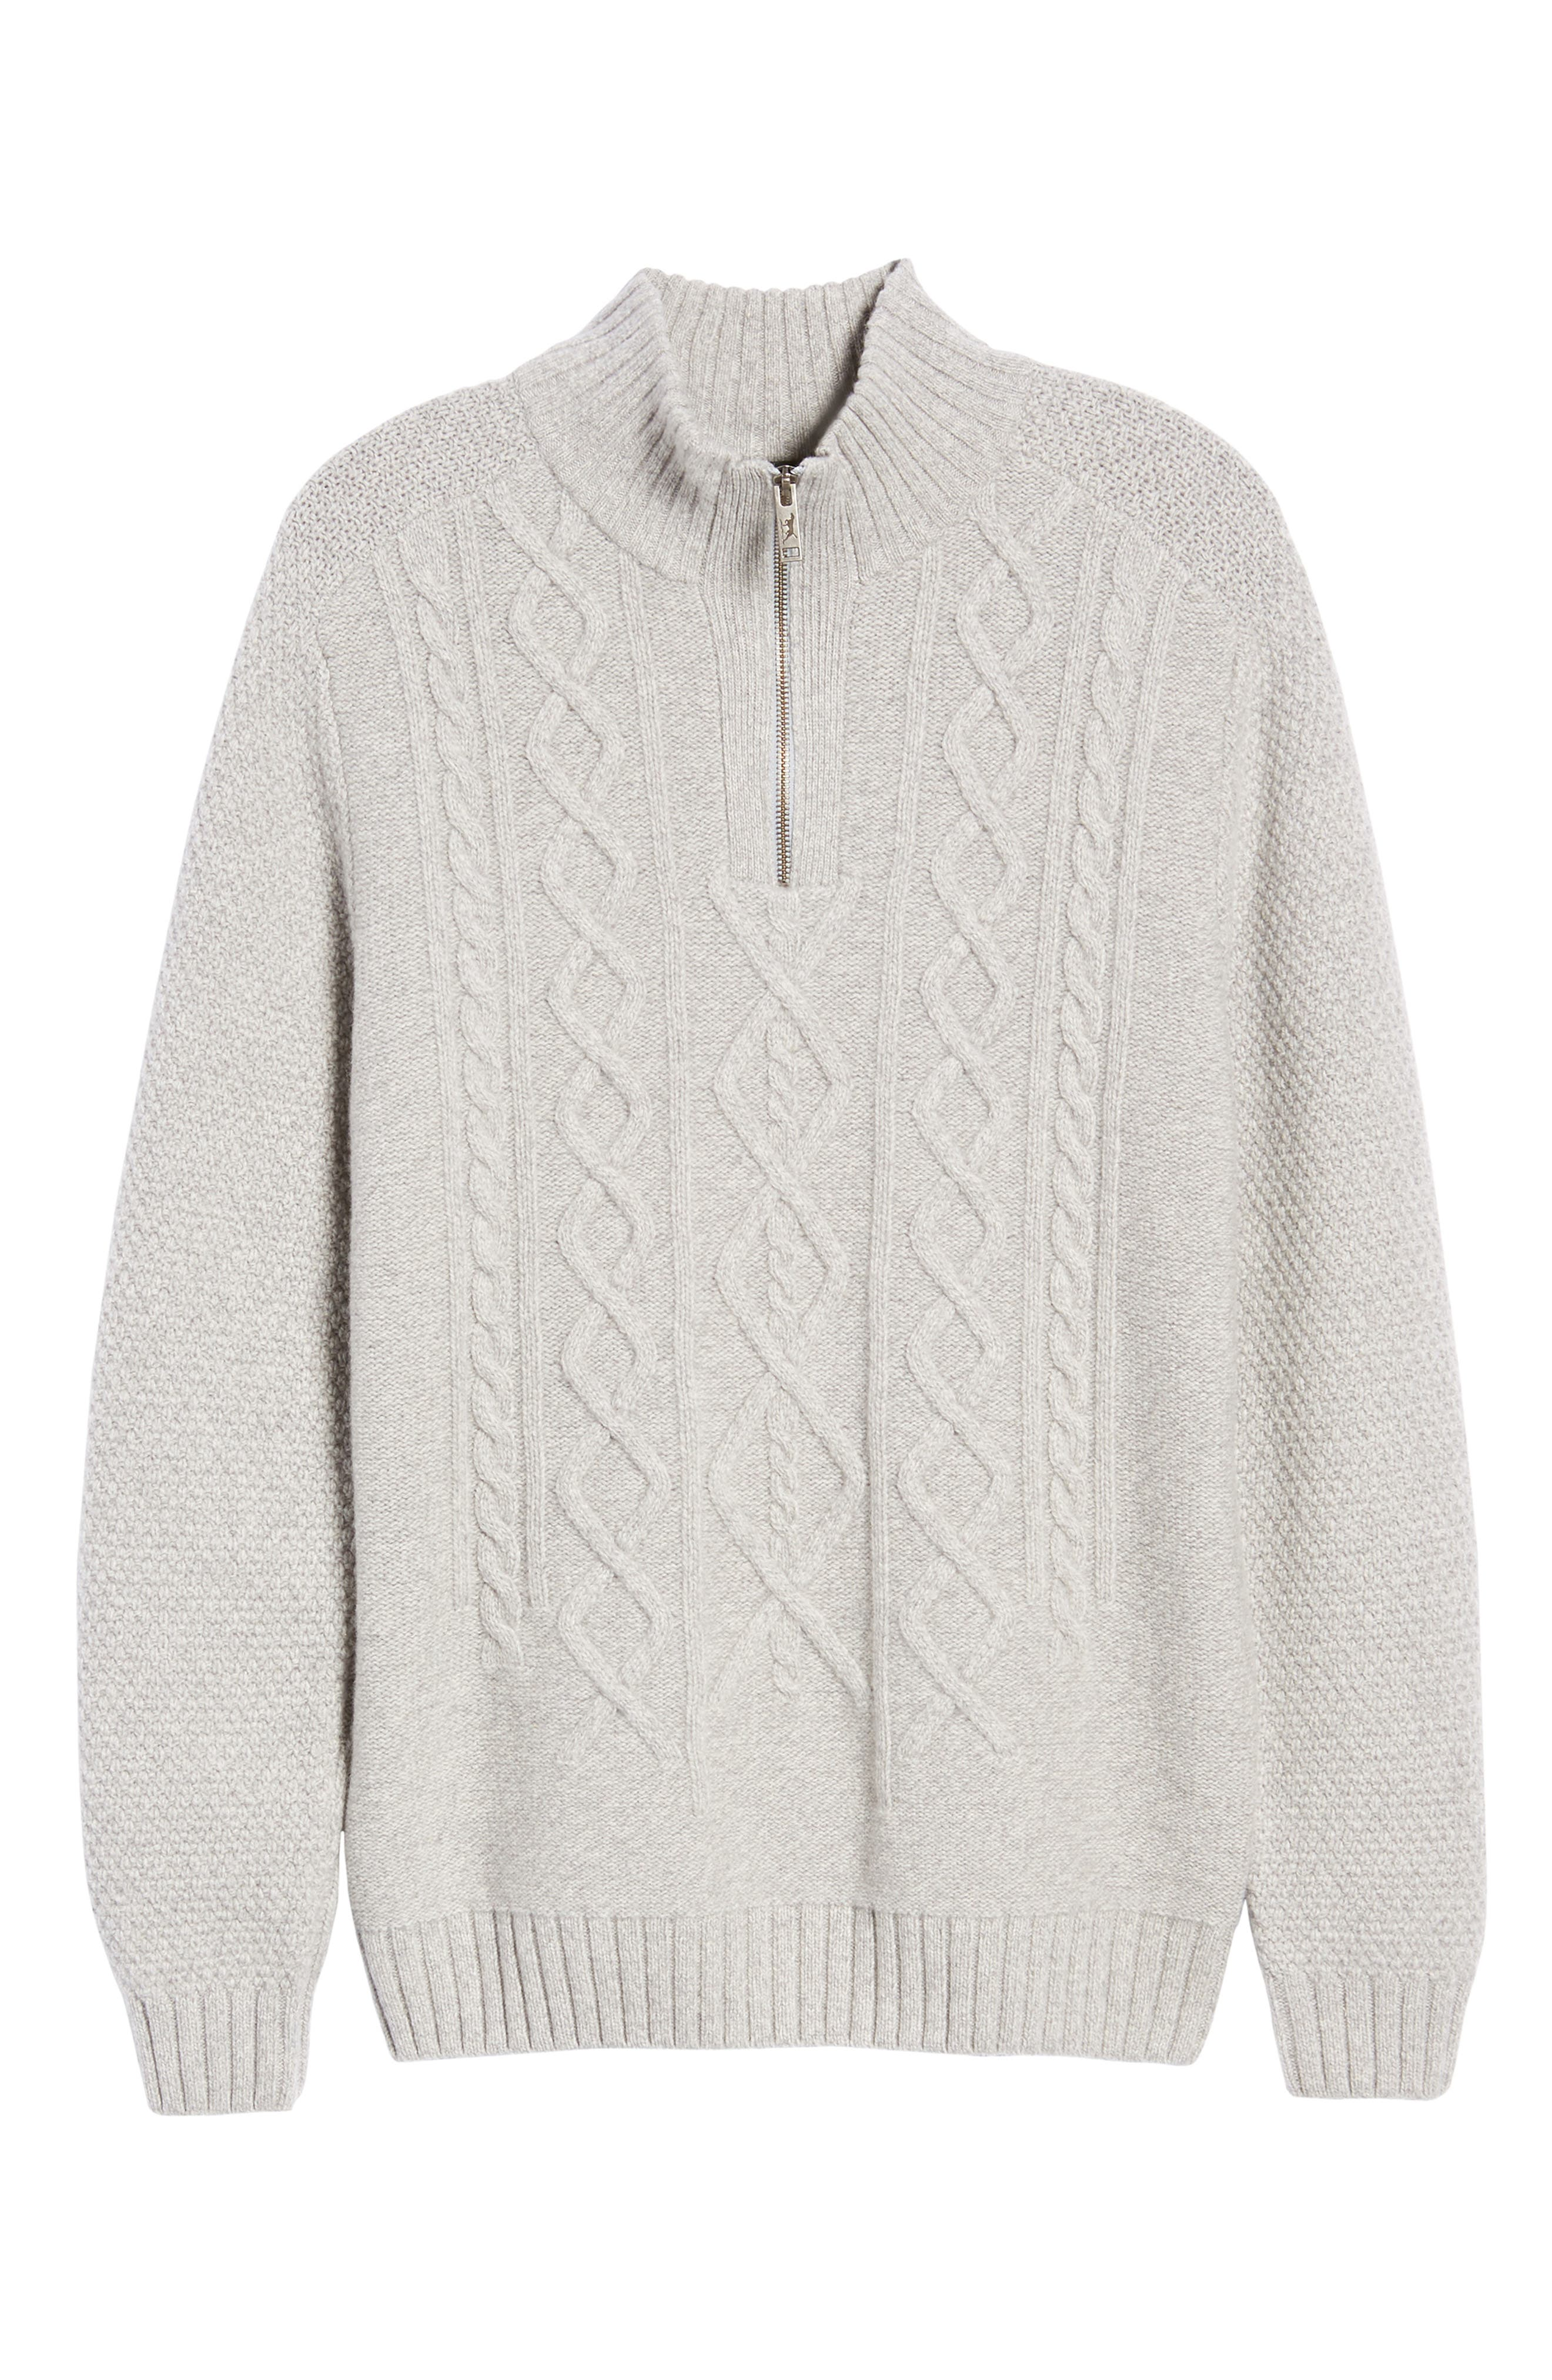 Cape Scoresby Wool Sweater,                             Alternate thumbnail 16, color,